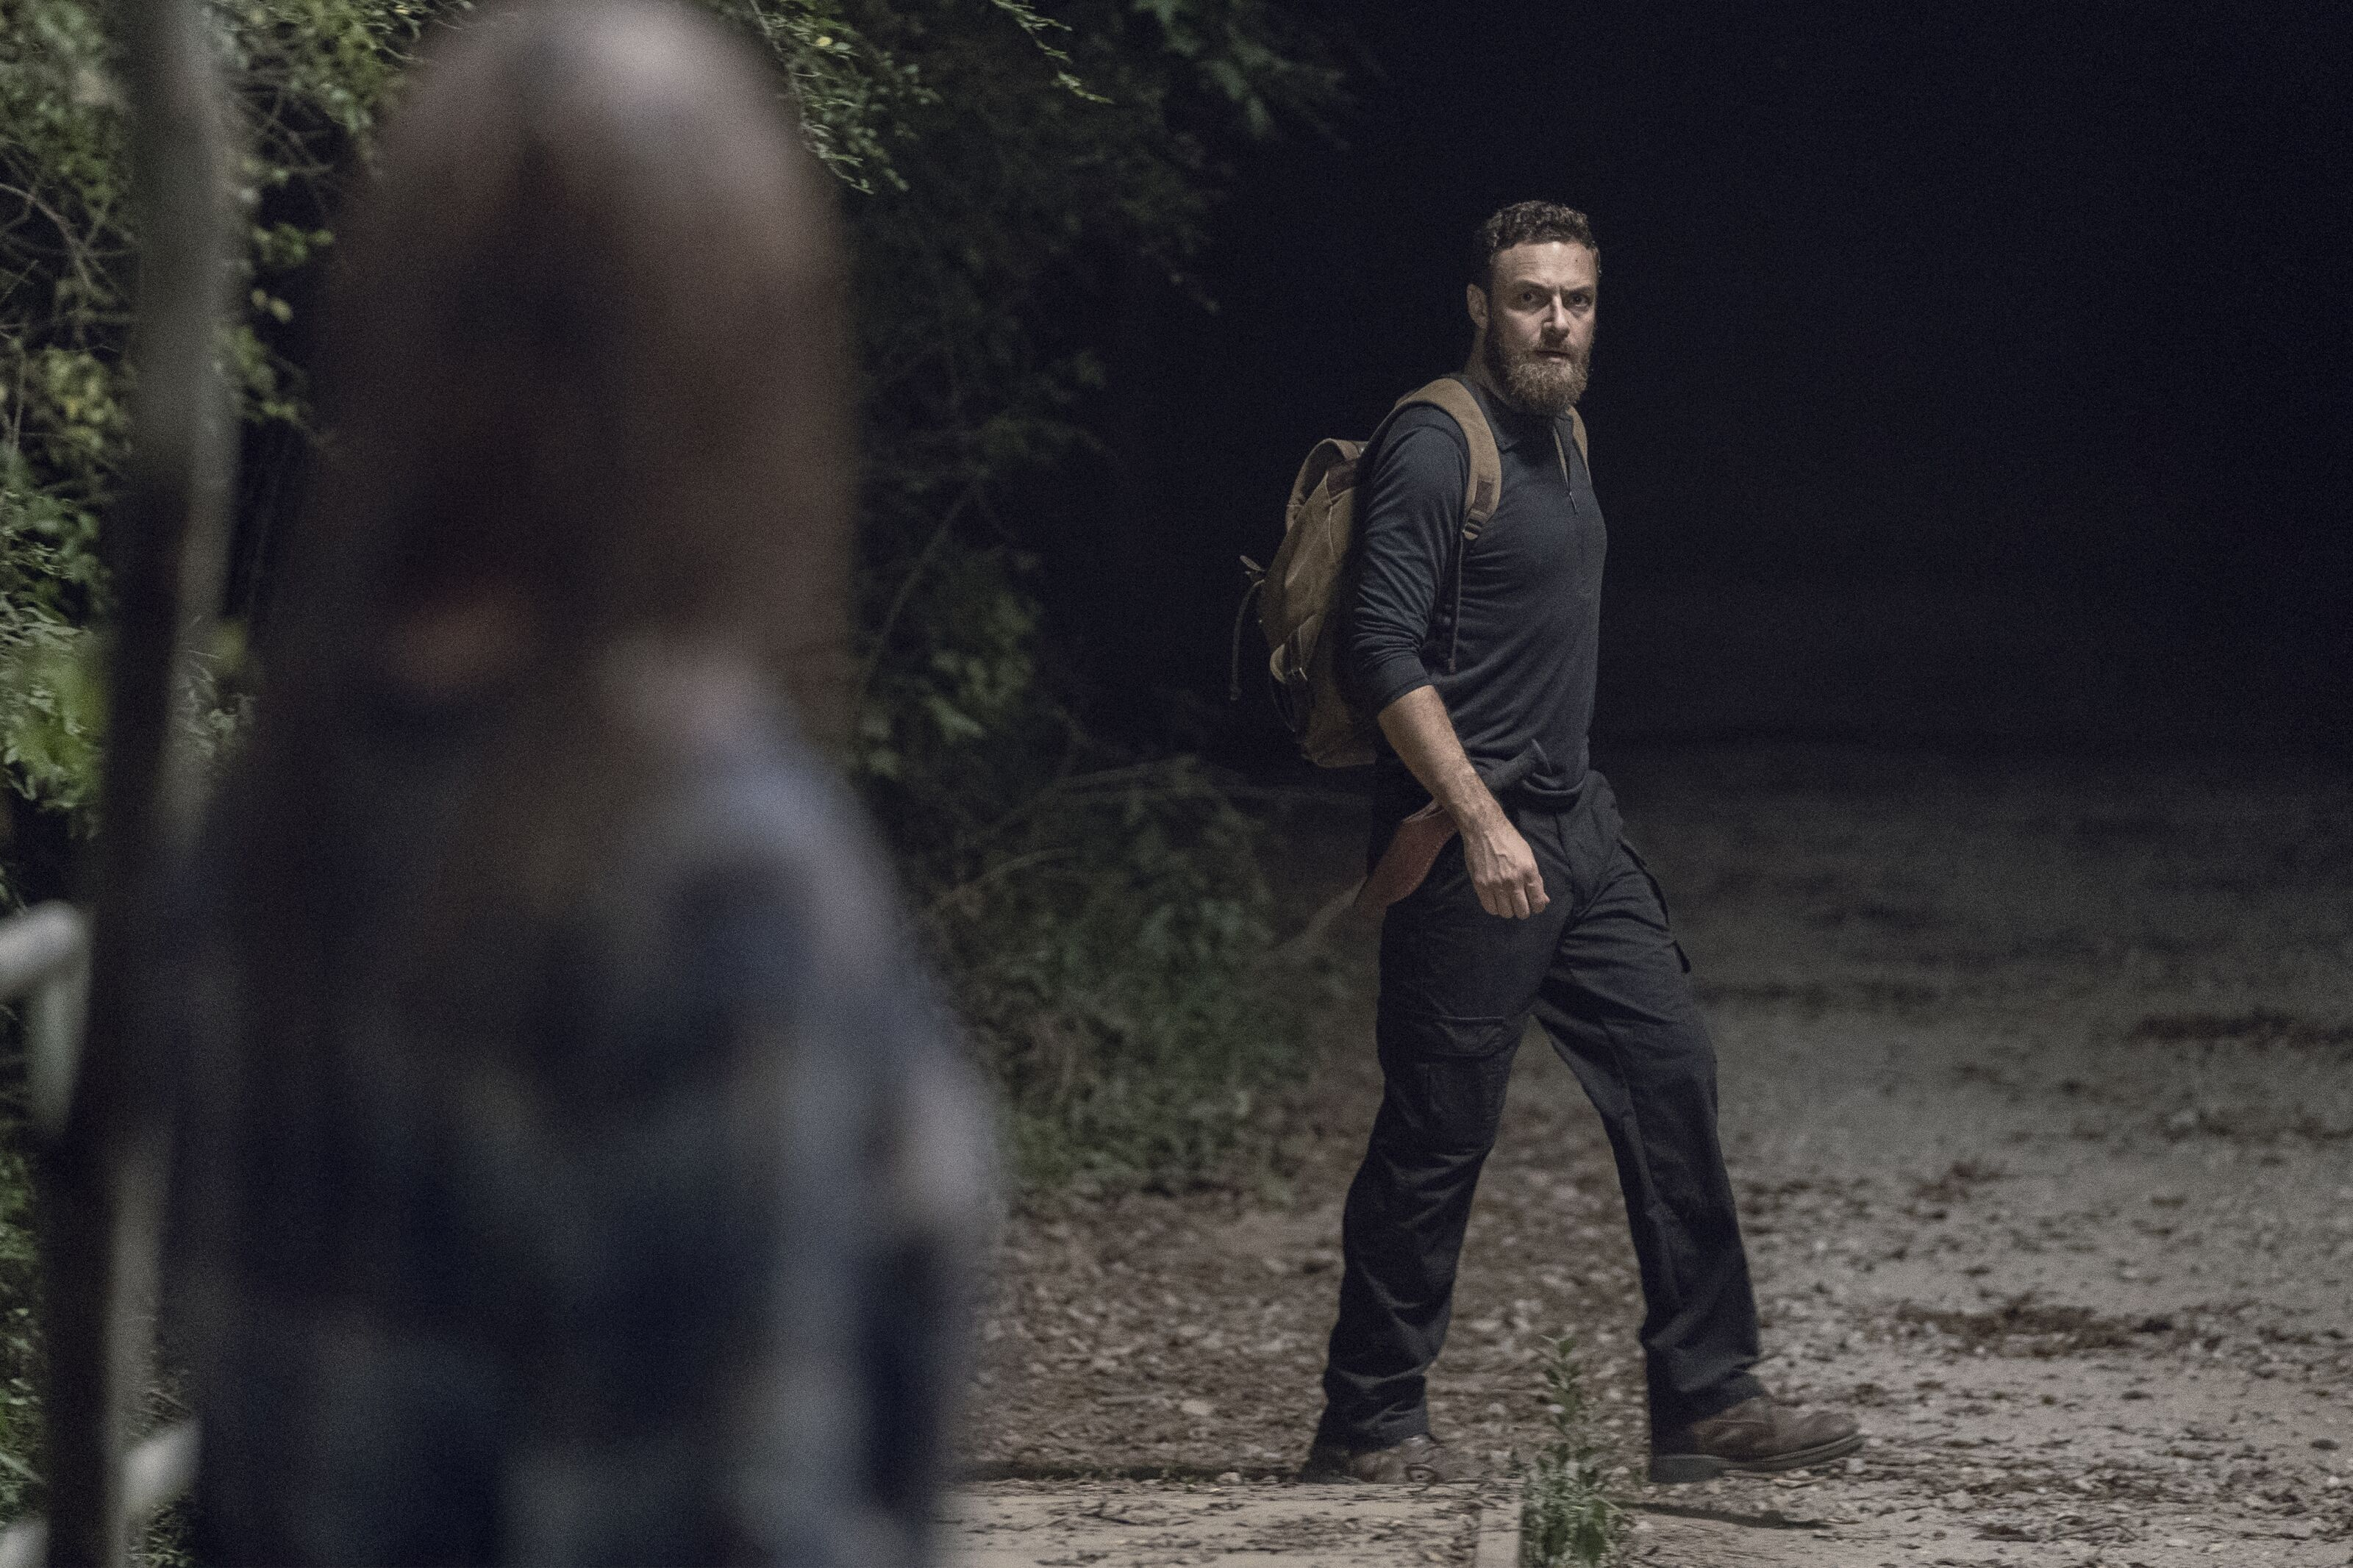 The Walking Dead 1008 spoiler-free reaction and preview